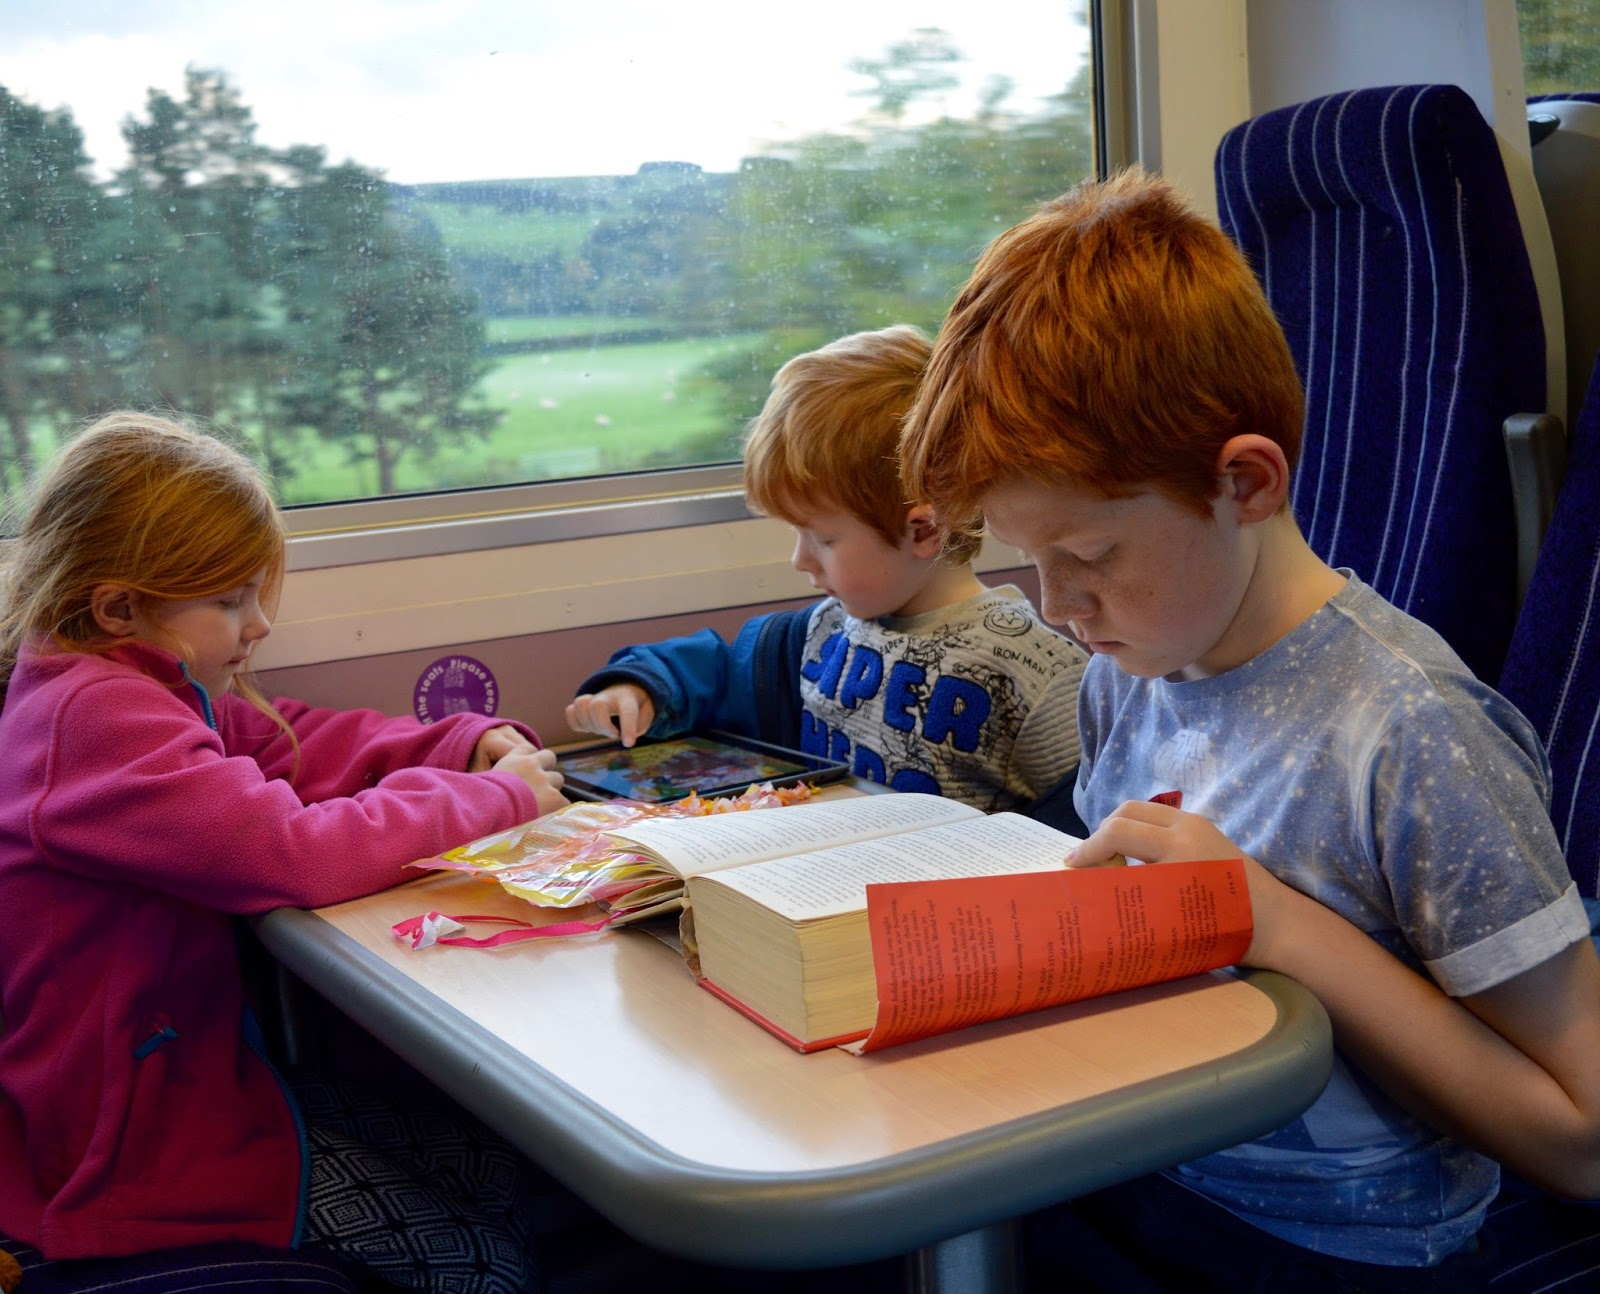 Great Days Out with Northern  | Our Day Trip to Carlisle by Train - Northern train seat with table